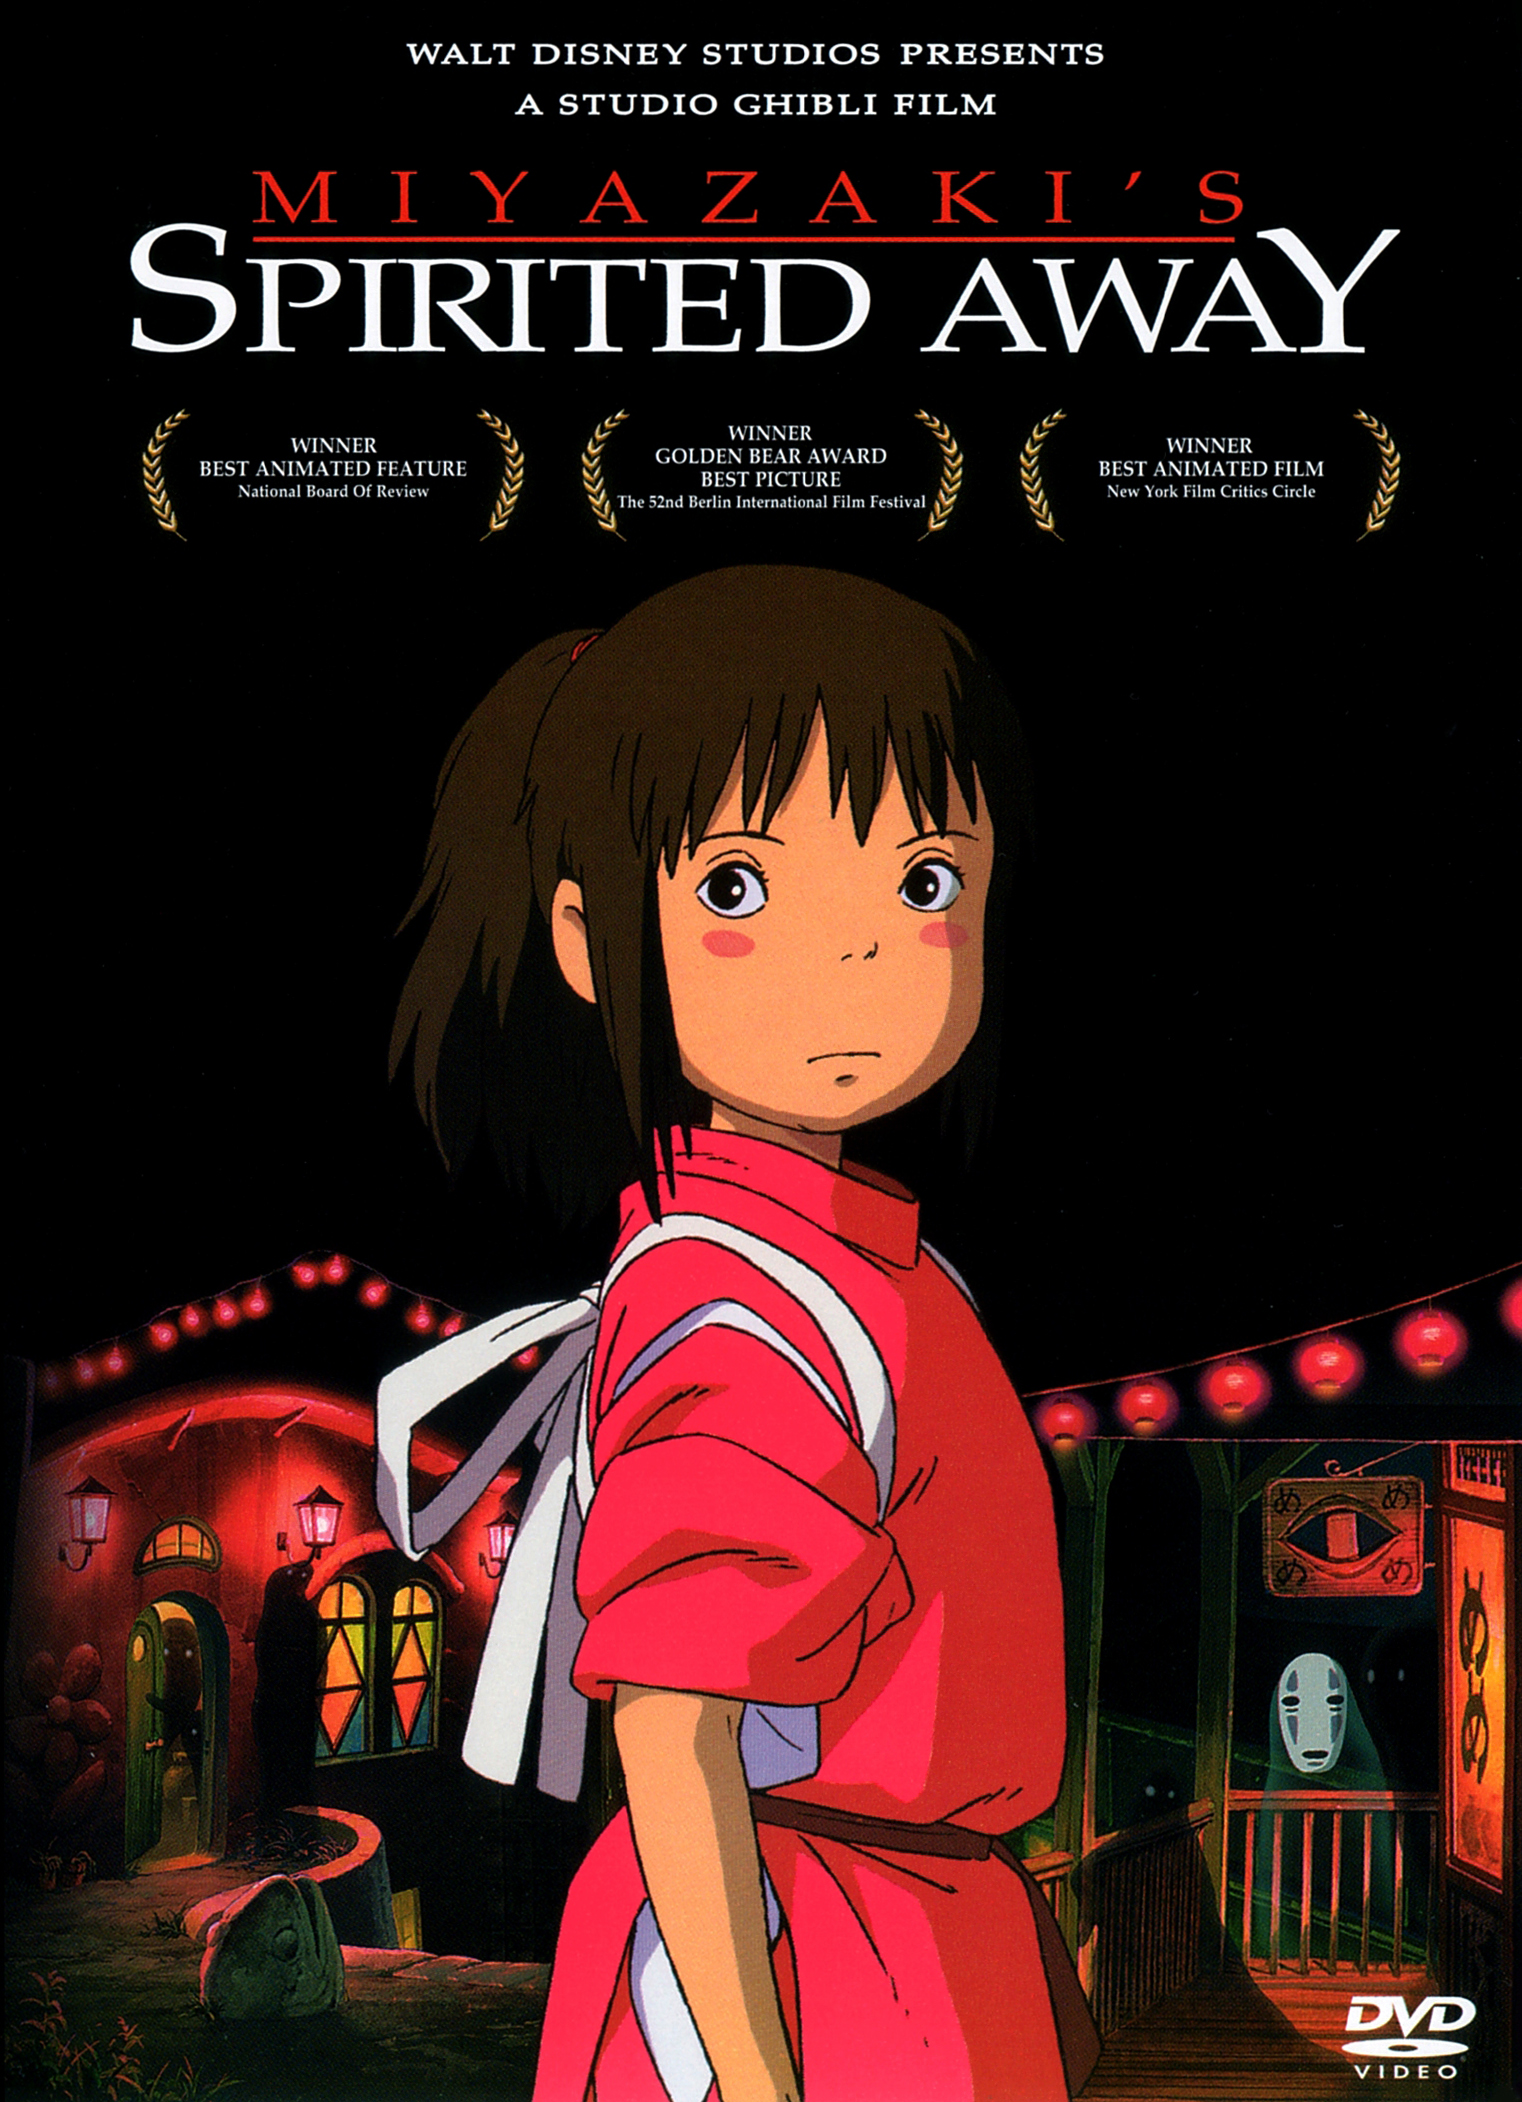 hayao miyazaki s spirited away and japaneseness Spirited away is one of the deepest and most complex movies in miyazaki's filmography and one that deserves a great deal of thought whole books can and have been written about it and i've got .